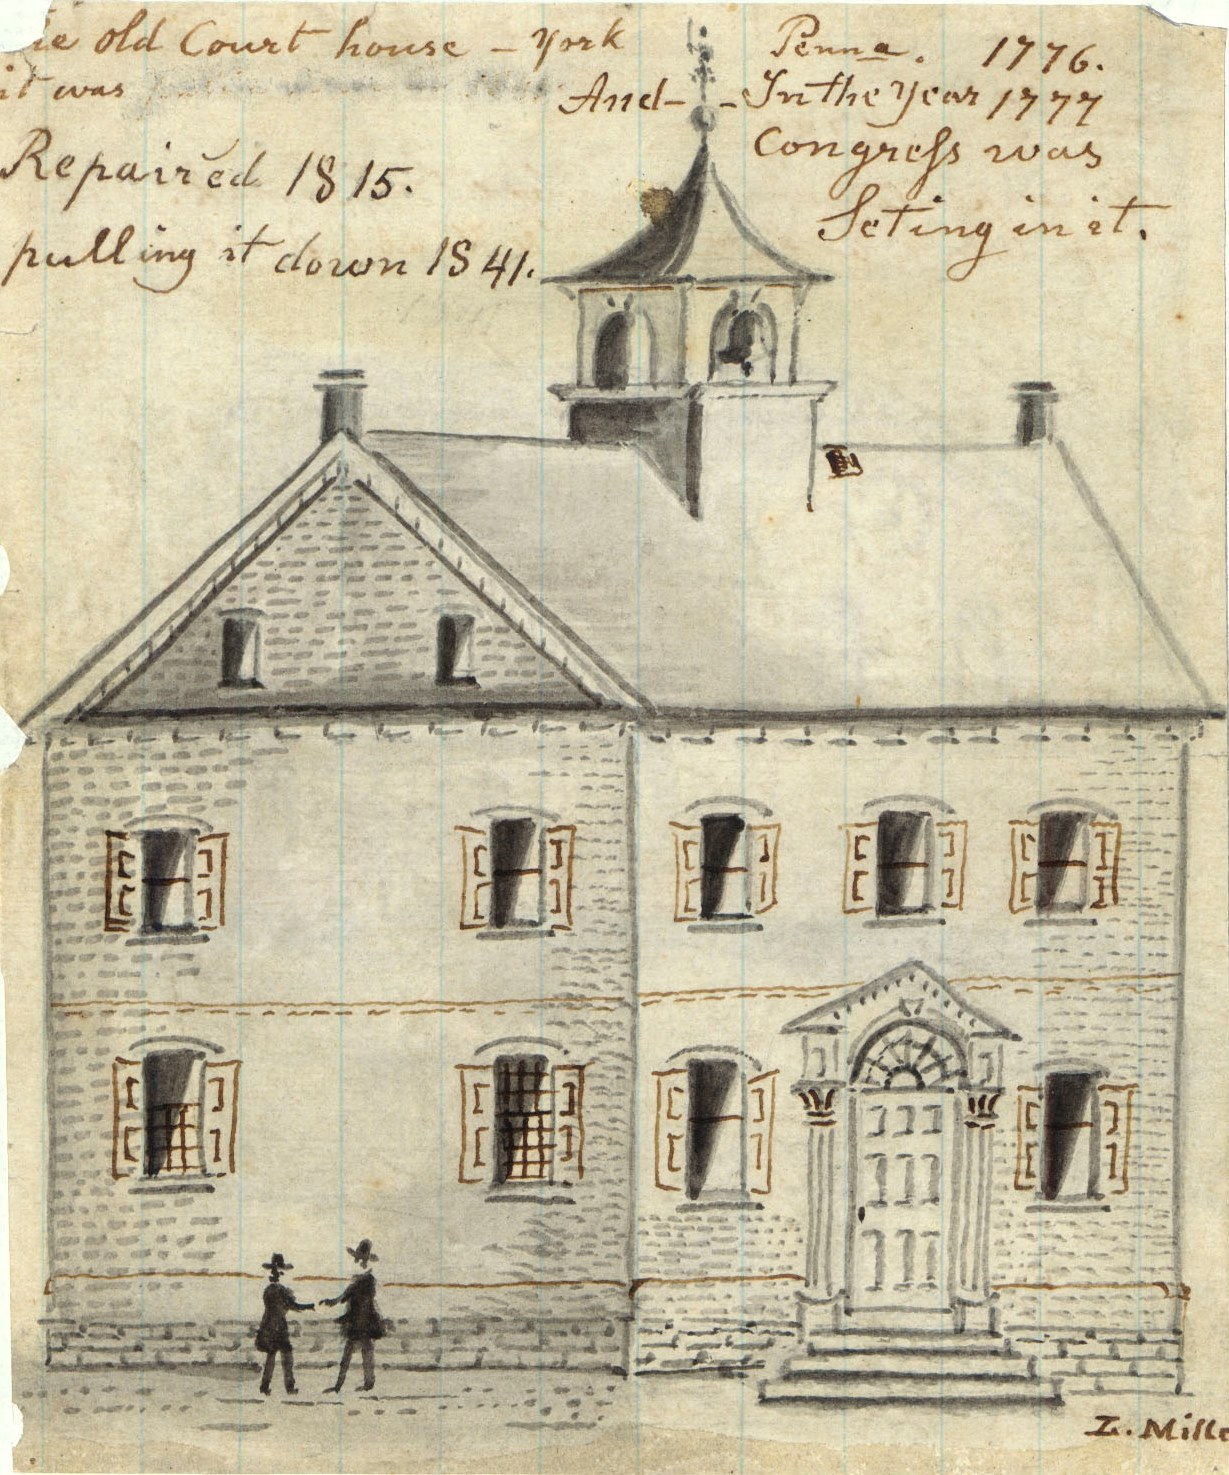 Sketch of the original courthouse by folk artist, Lewis Miller. Was located at the intersection of Market Street and George Street--the Center Square.